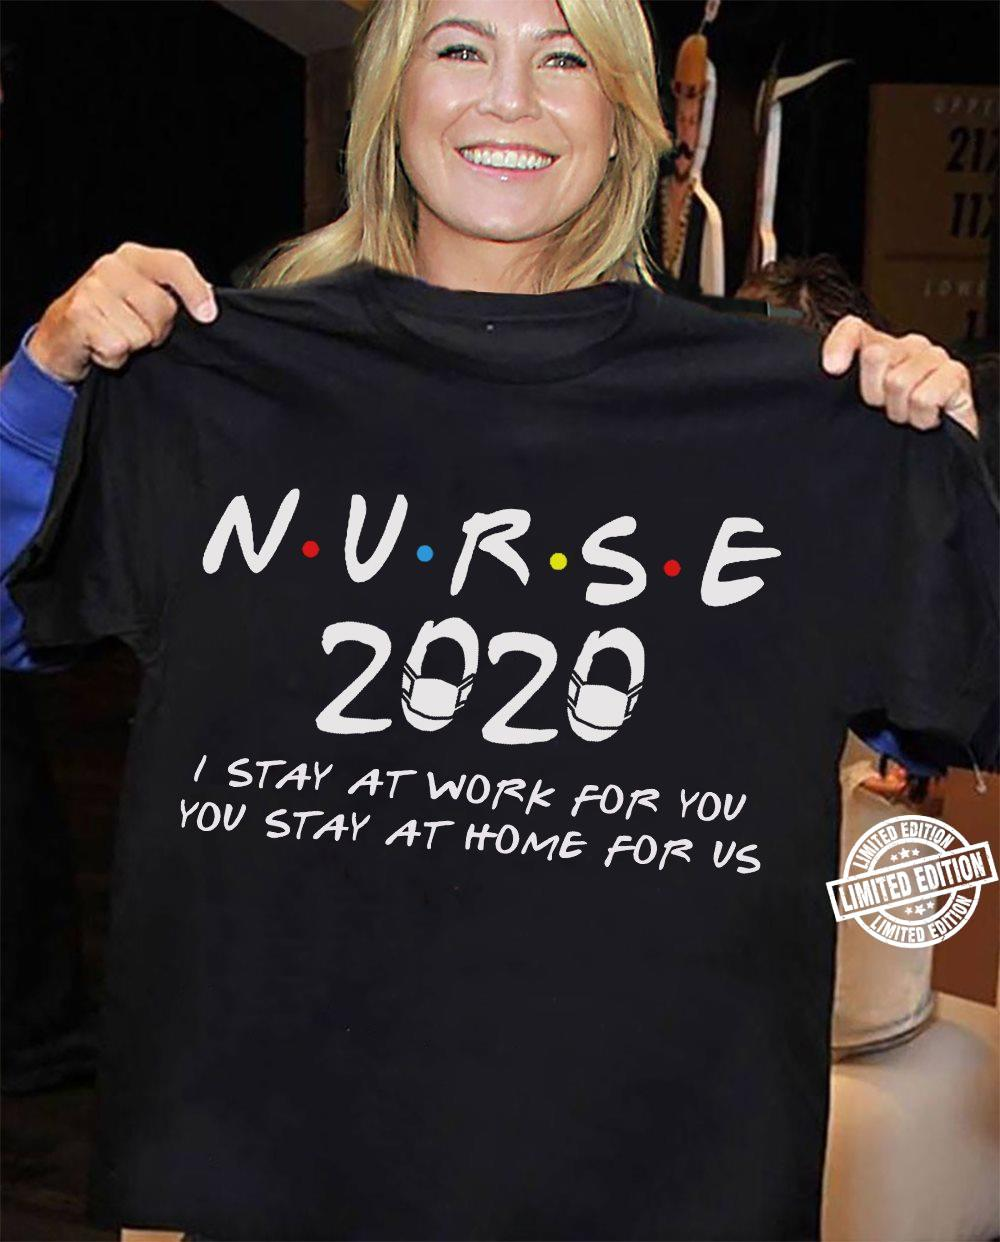 Nurse 2020 I stay at work for you you stay at home for us shirt